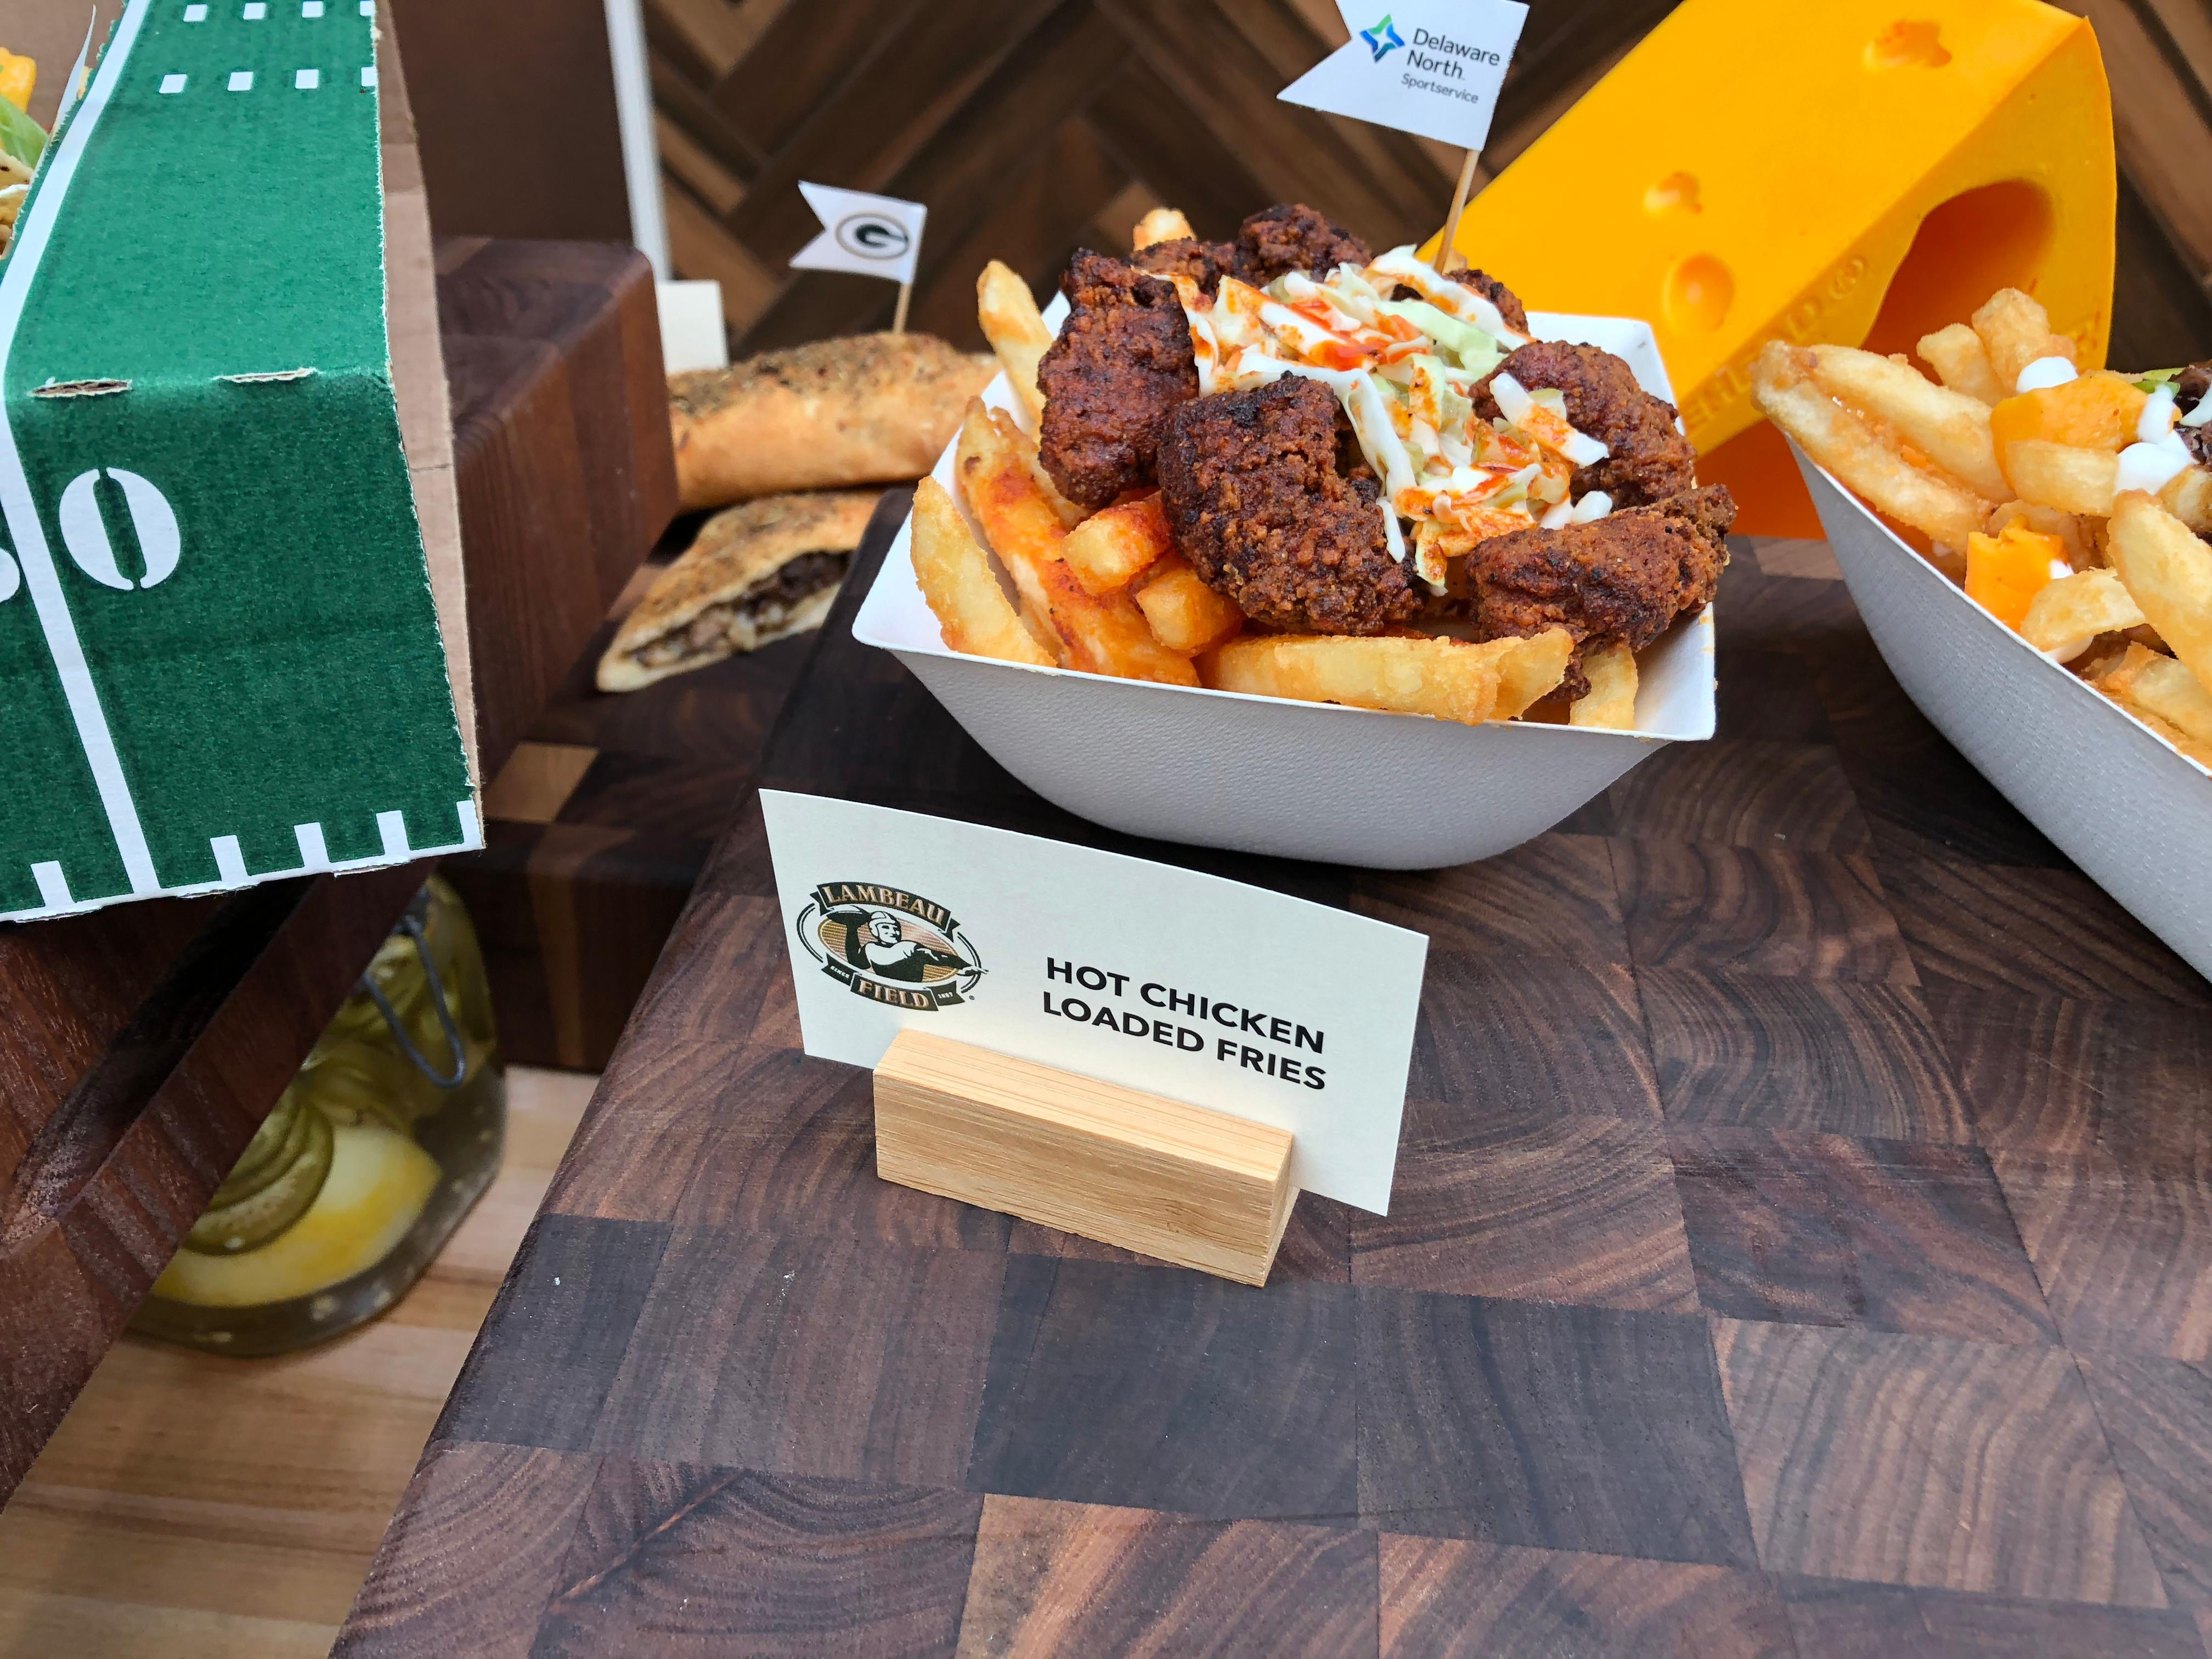 Hot Chicken Loaded Fries are part of the Packers game day menu, September 10, 2019 (WLUK/Eric Peterson)